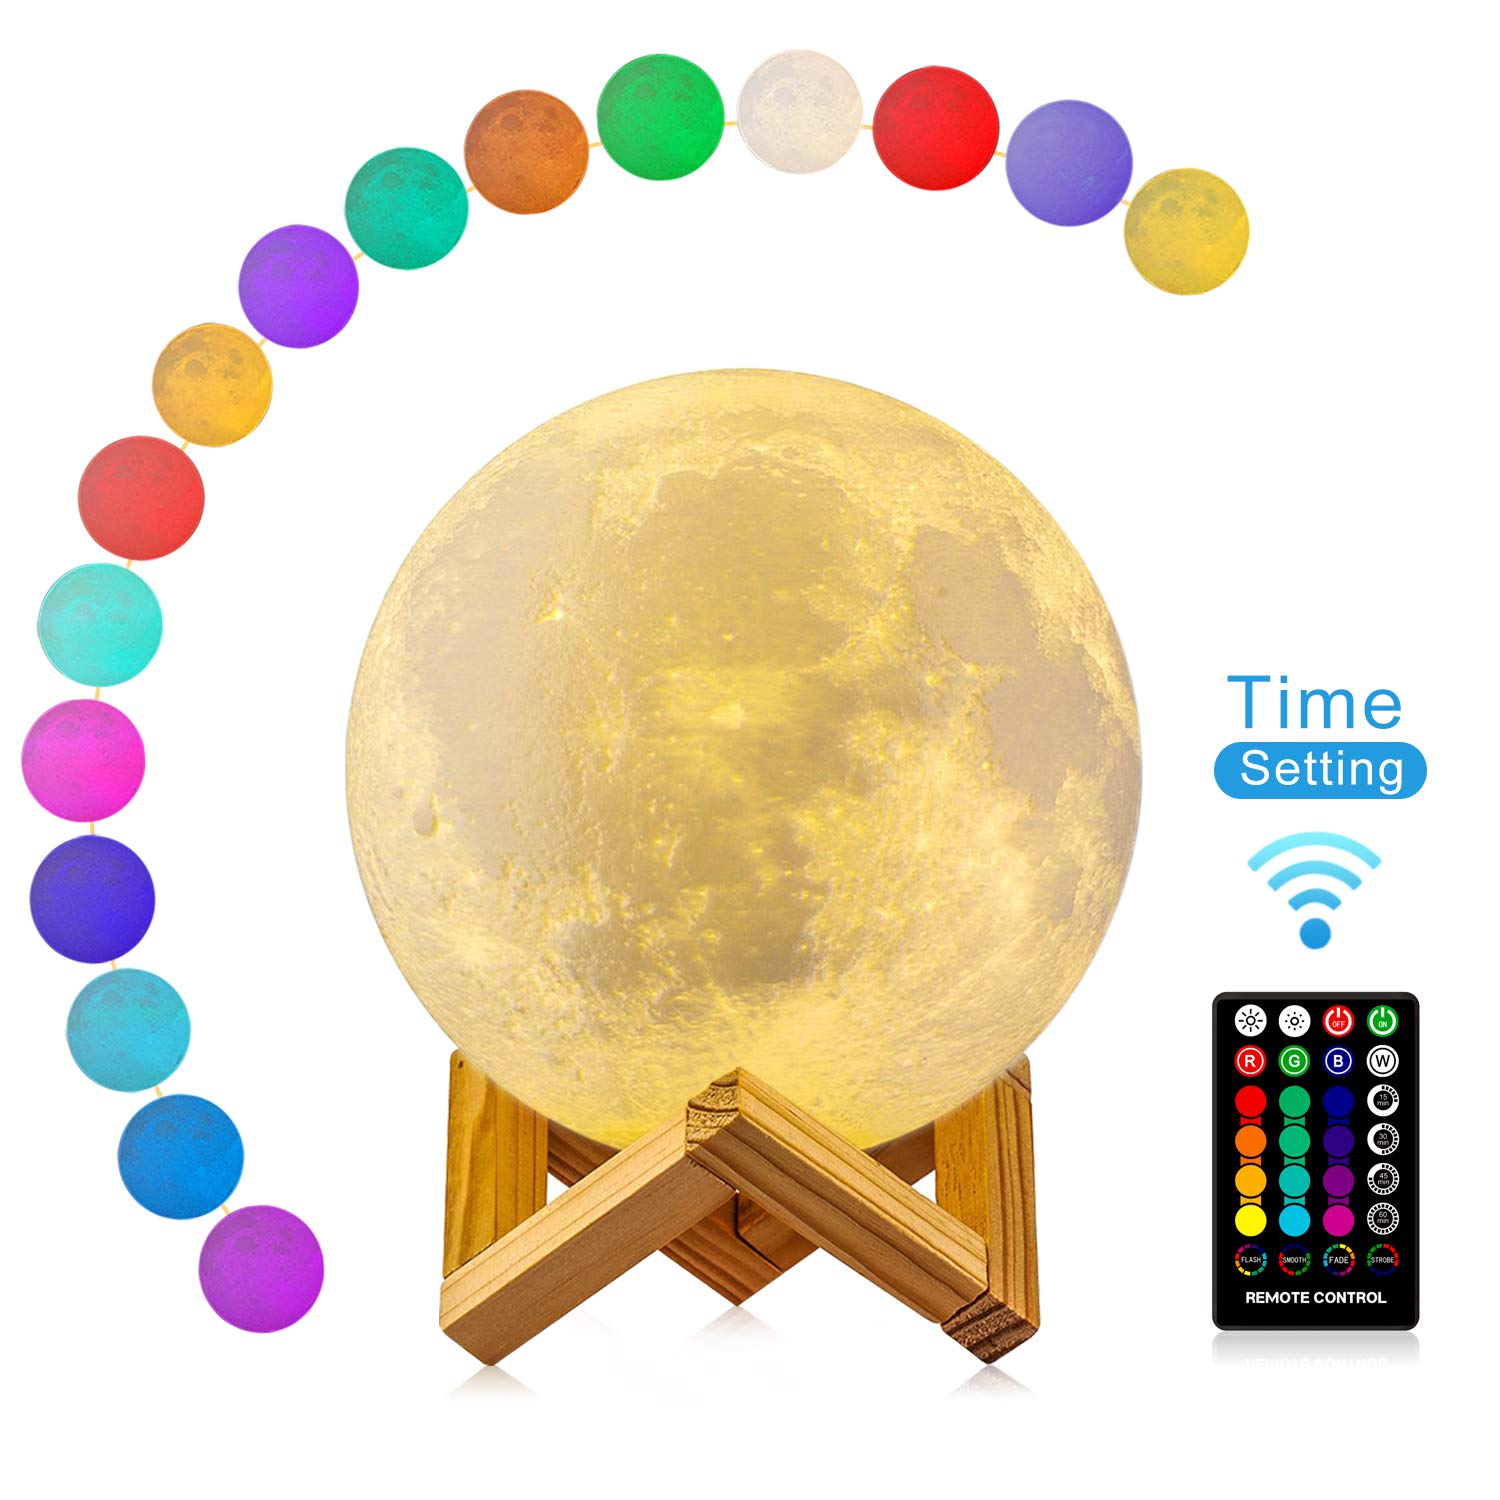 Moon Lamp 3D Moon Night Light with Timing Setting, DTOETKD 16 Colors LED RGB Full Moon Lamp Remote & Touch Control USB Charging Dimmable Home Decorative Moonlamp for Kids Lover Birthday Christmas Gifts (15cm / 5.9in) moonlamp-15cm-16cr